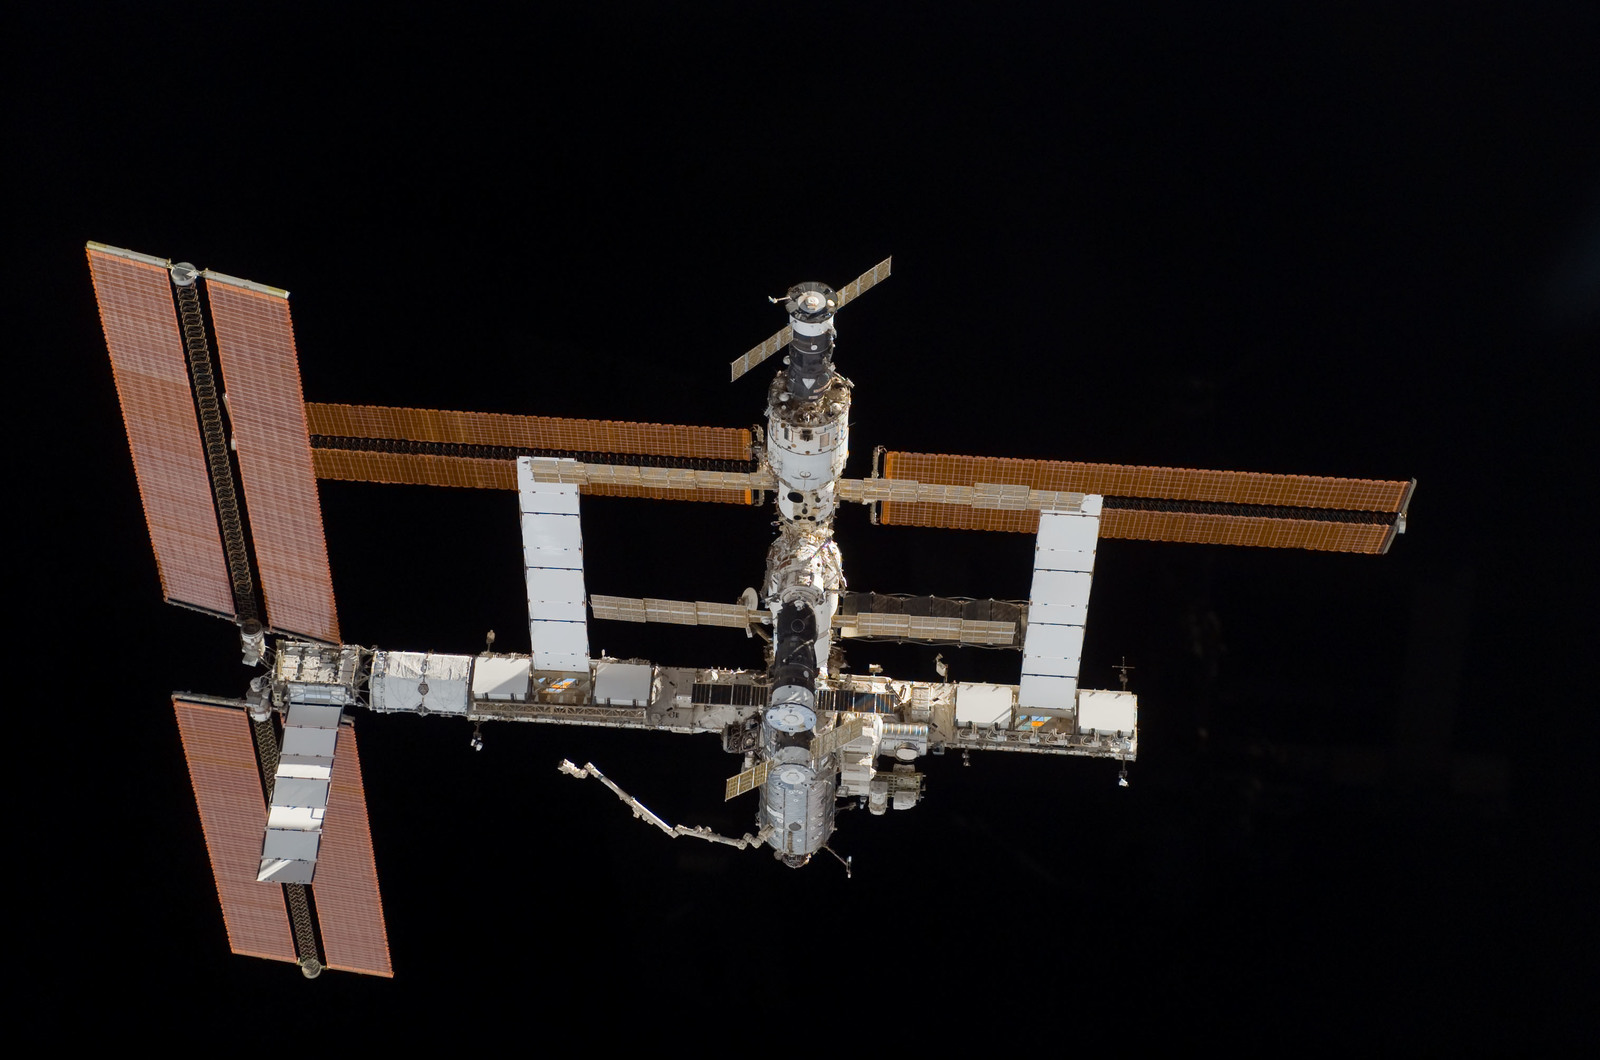 S115E06712 - STS-115 - Overall exterior view of the ISS during undocking and Flyaround Operations for STS-115 Space Shuttle Atlantis